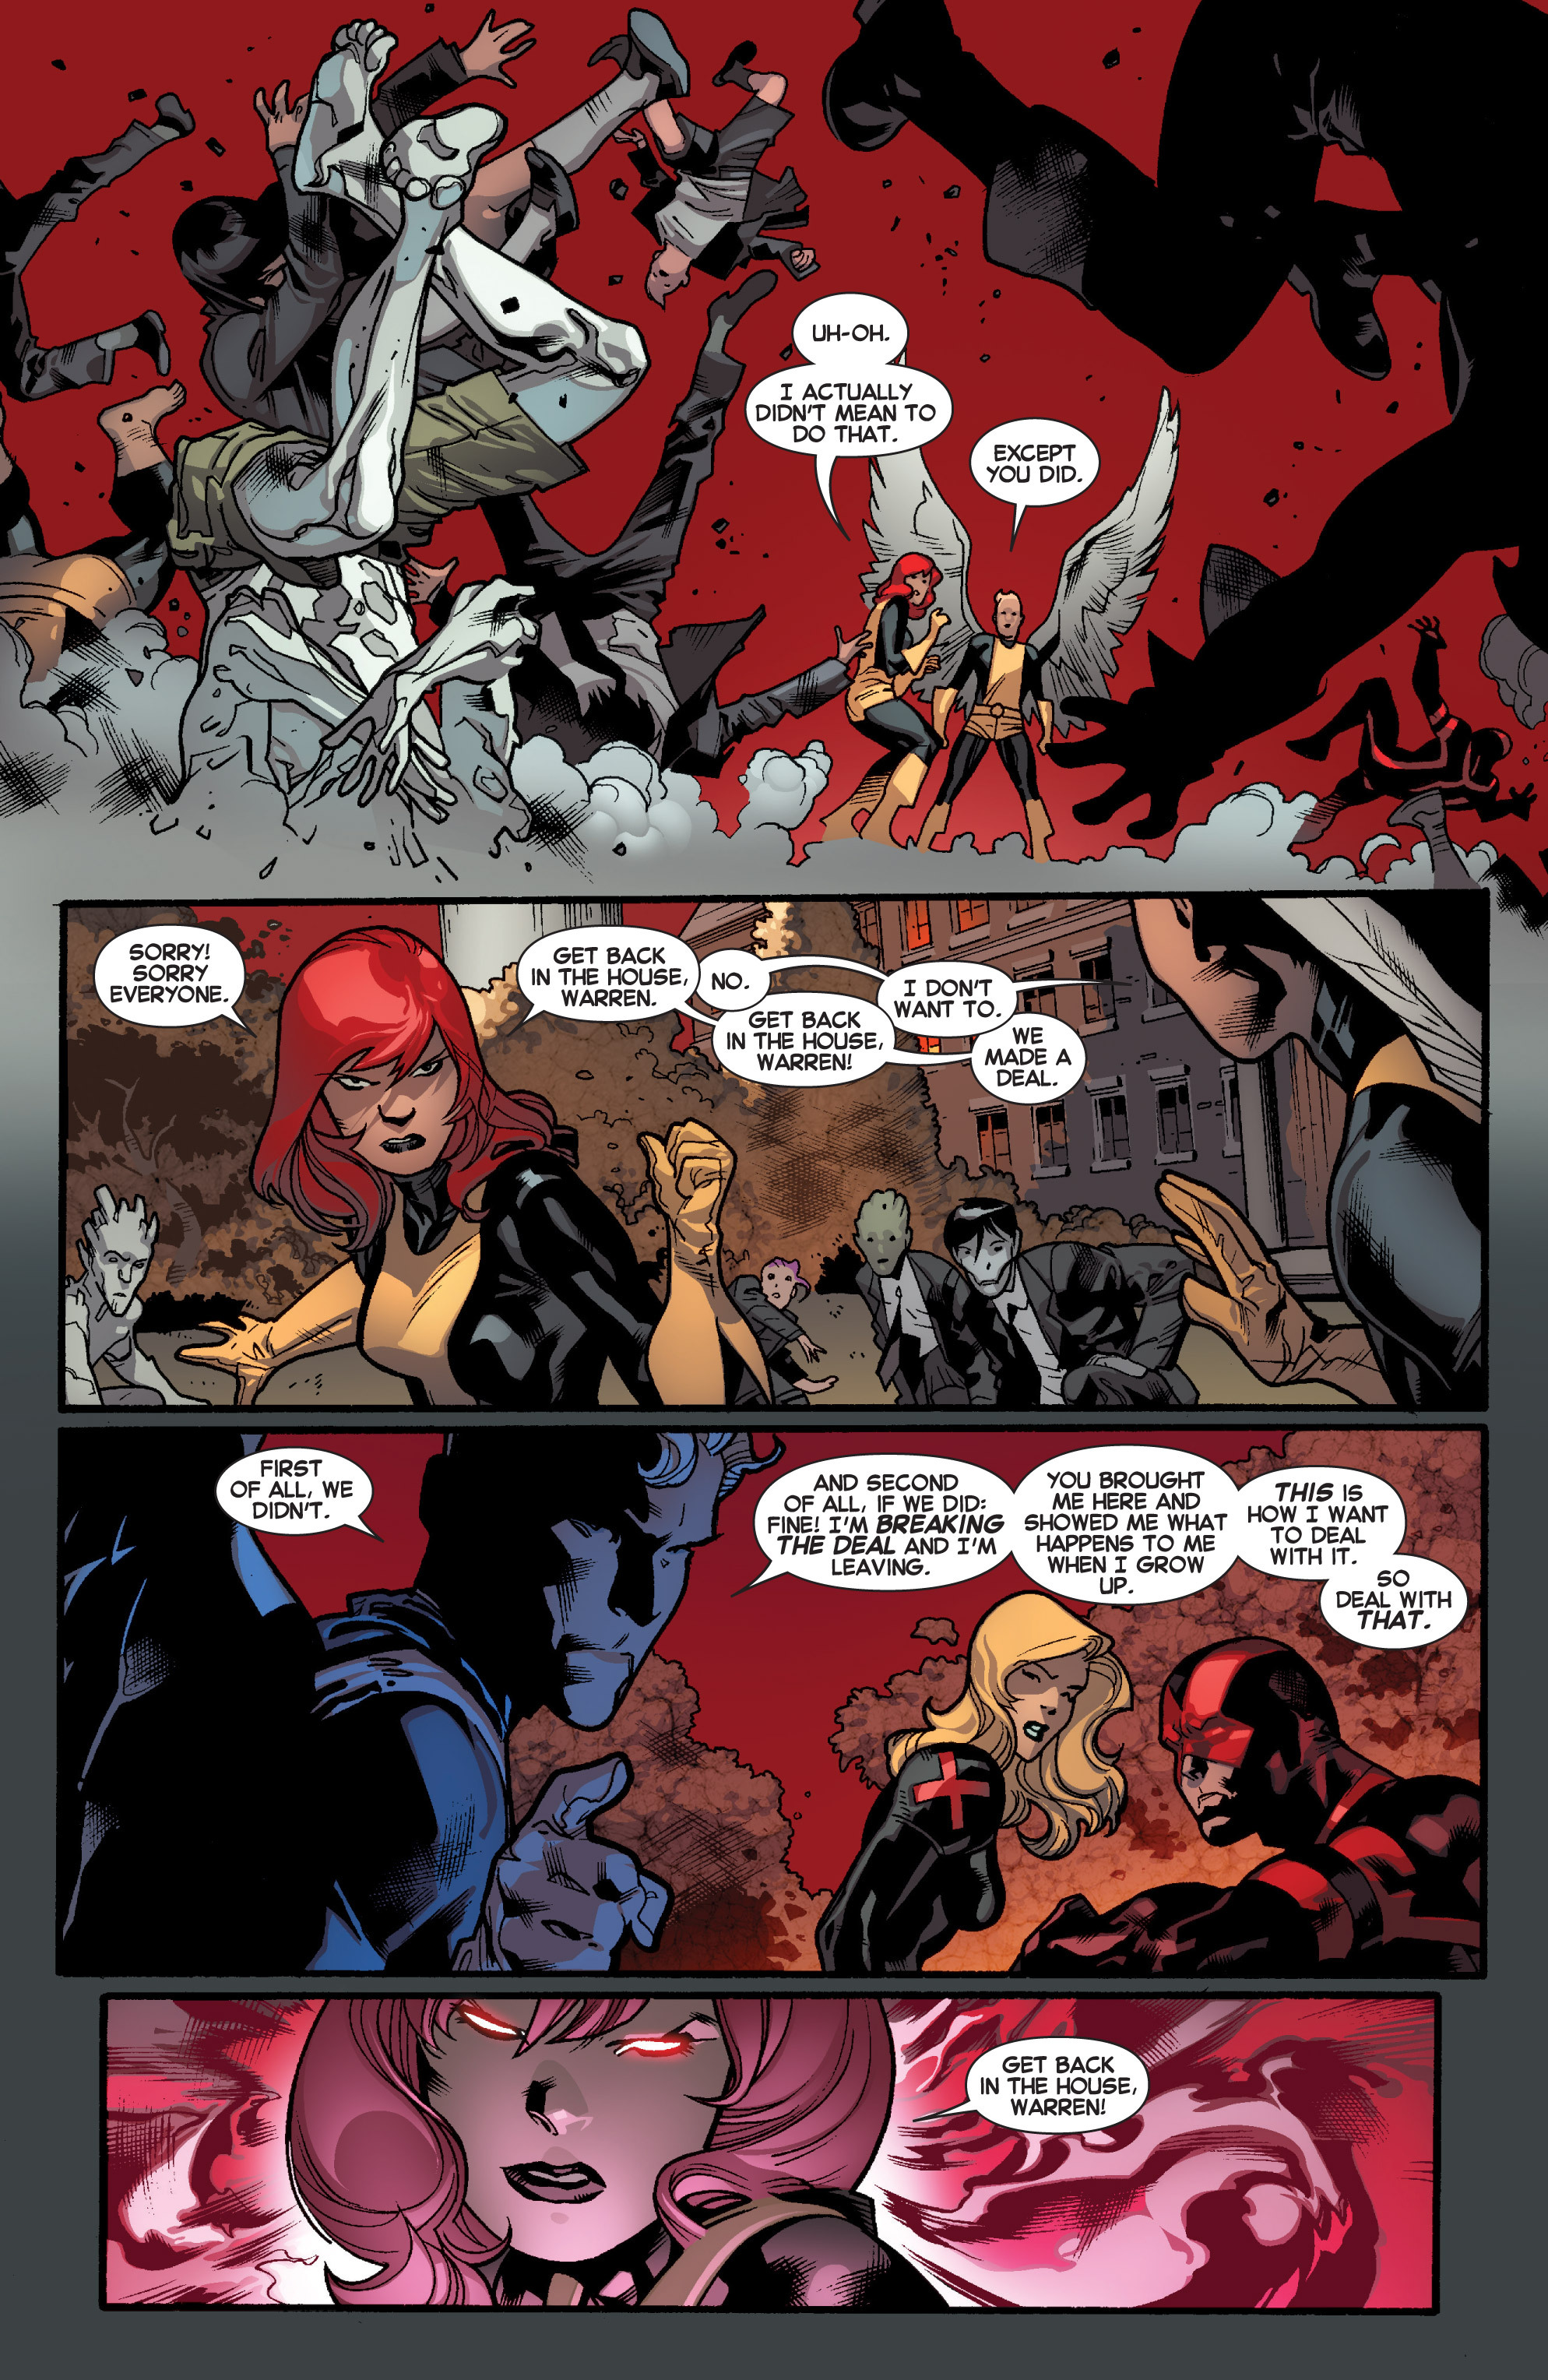 Read online All-New X-Men (2013) comic -  Issue # _Special - Out Of Their Depth - 8